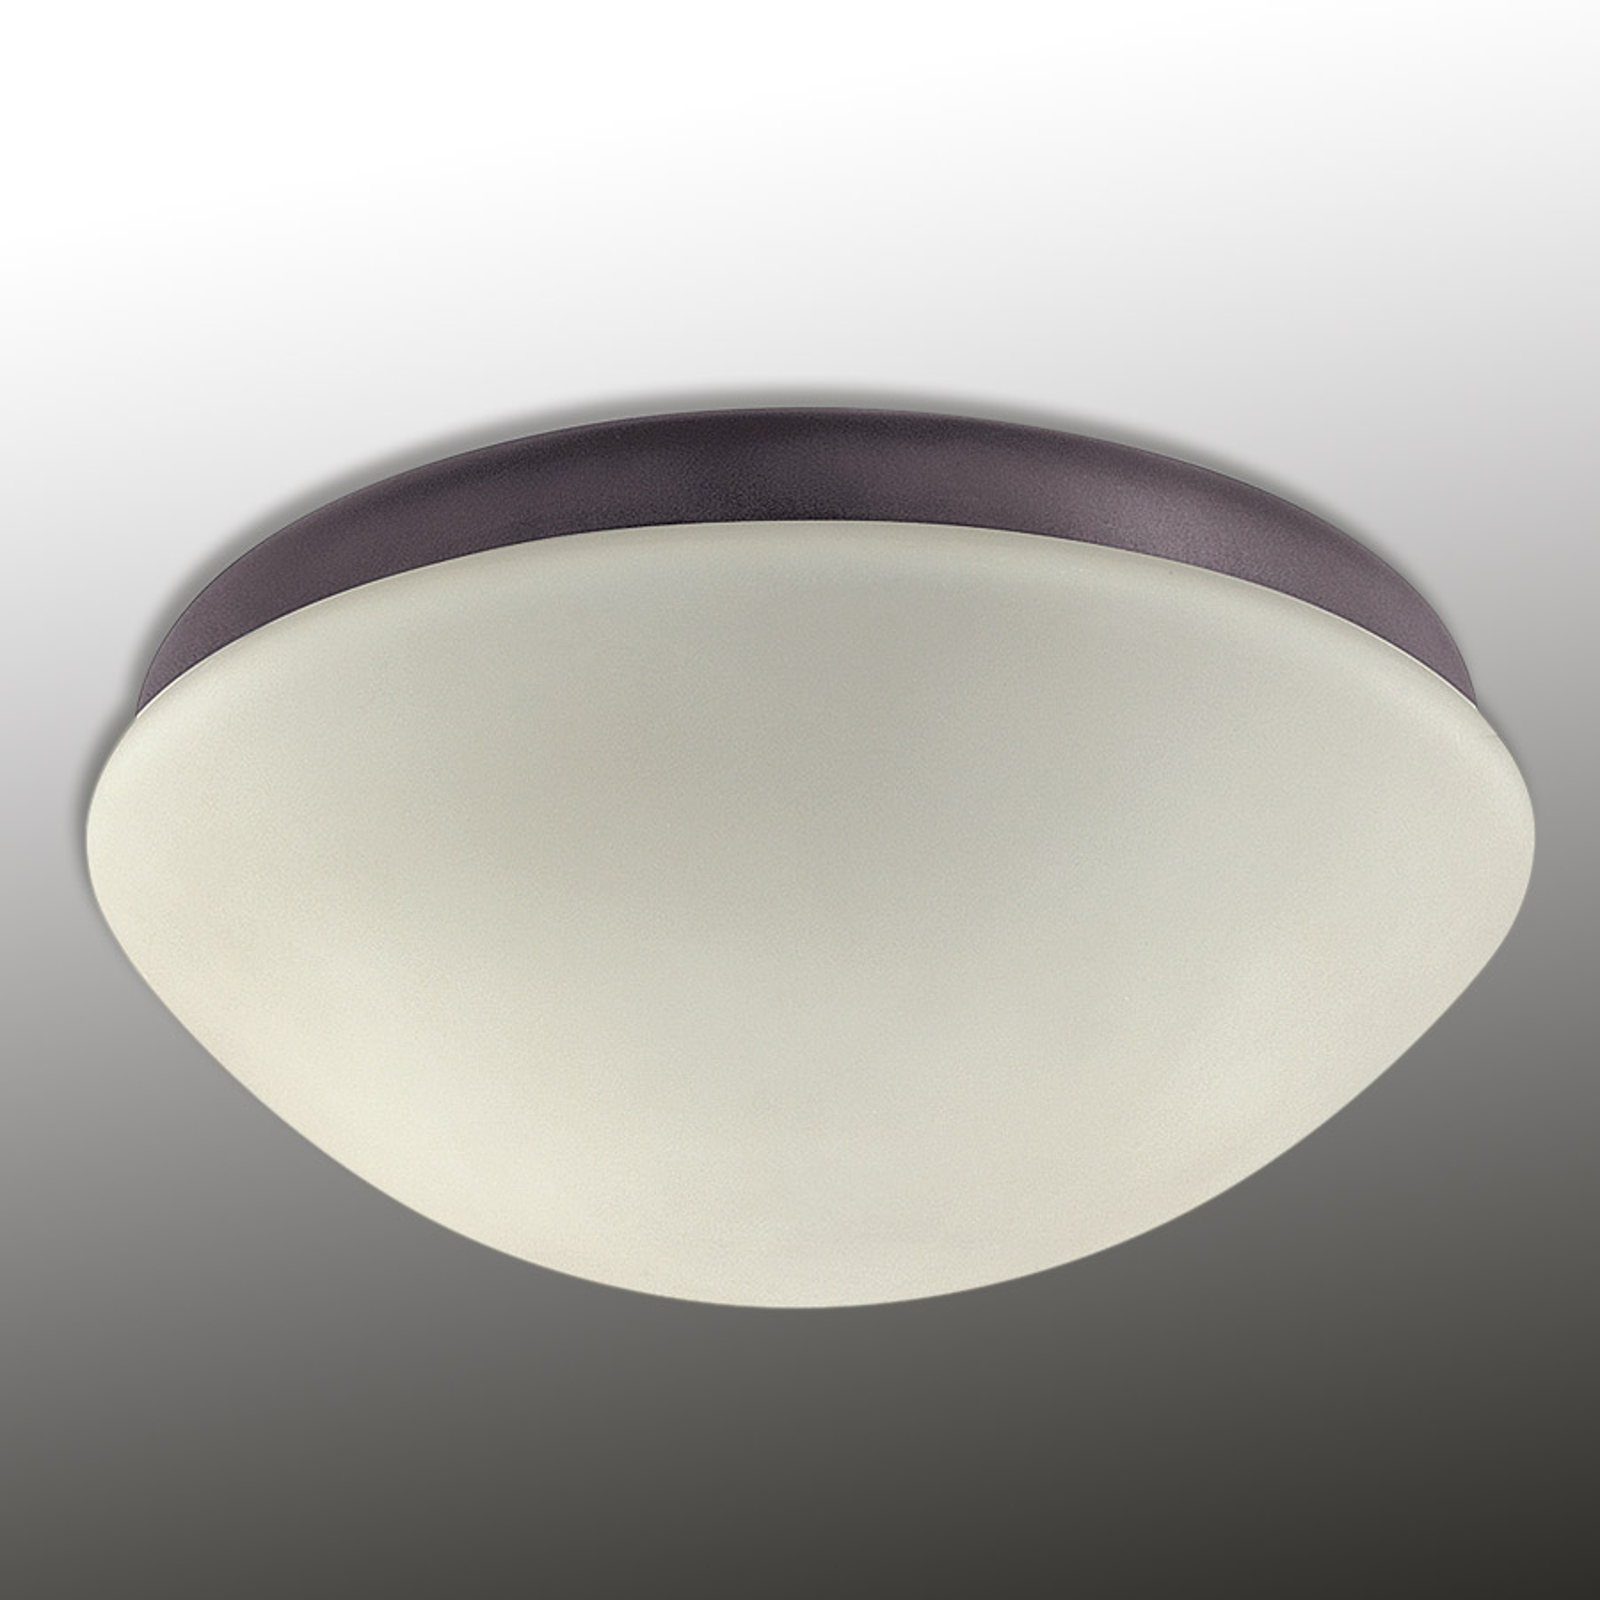 Light for ceiling fan Outdoor Elements, white_2015086_1